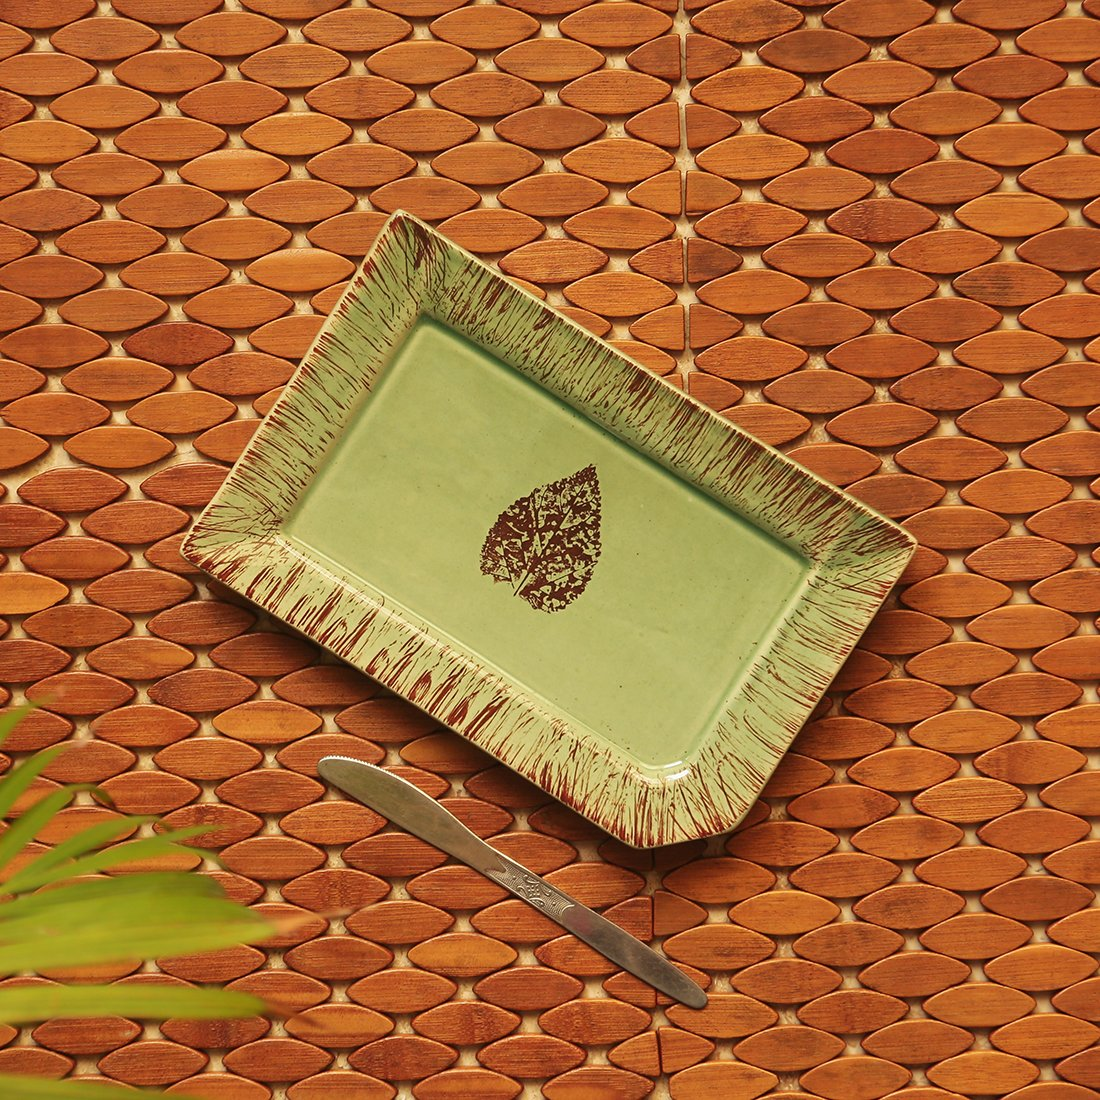 Moorni Banyan Leaves Hand-painted Studio Pottery Serving Platter In Ceramic (Microwave Safe)